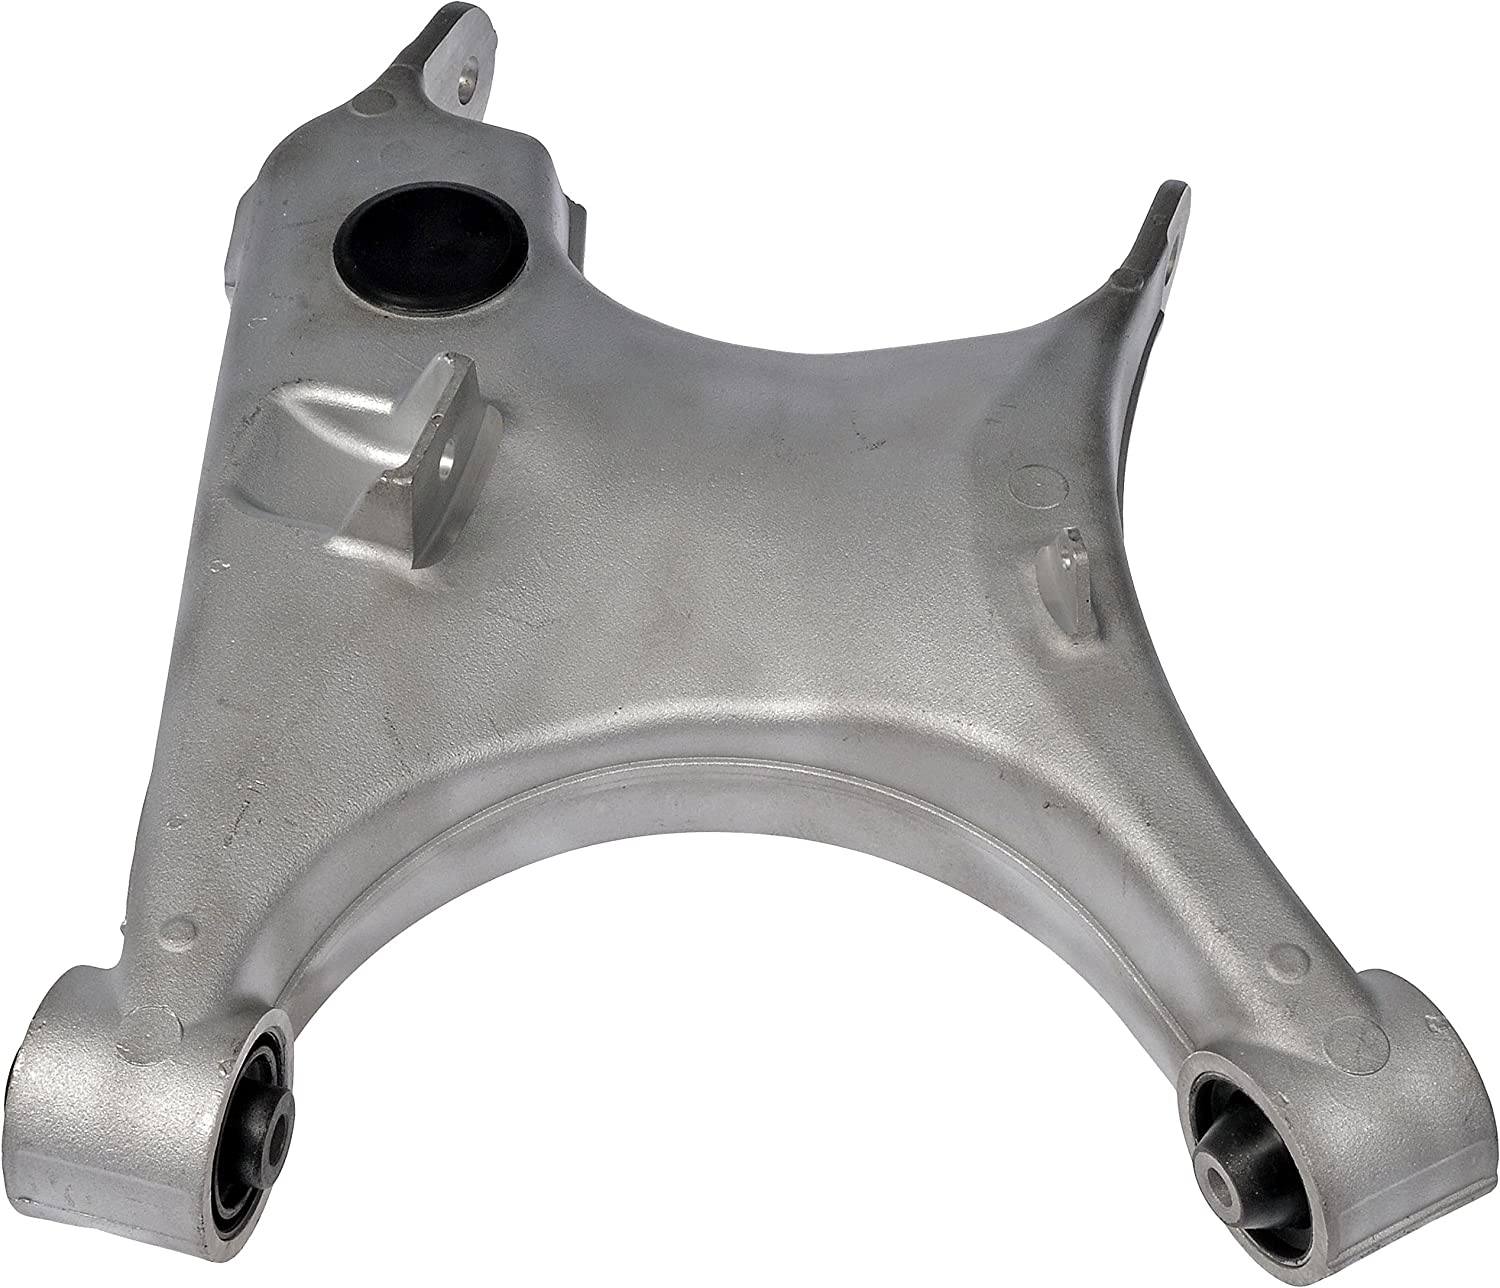 Dorman 521-675 Front Left Lower Suspension Control Arm for Select Toyota Models